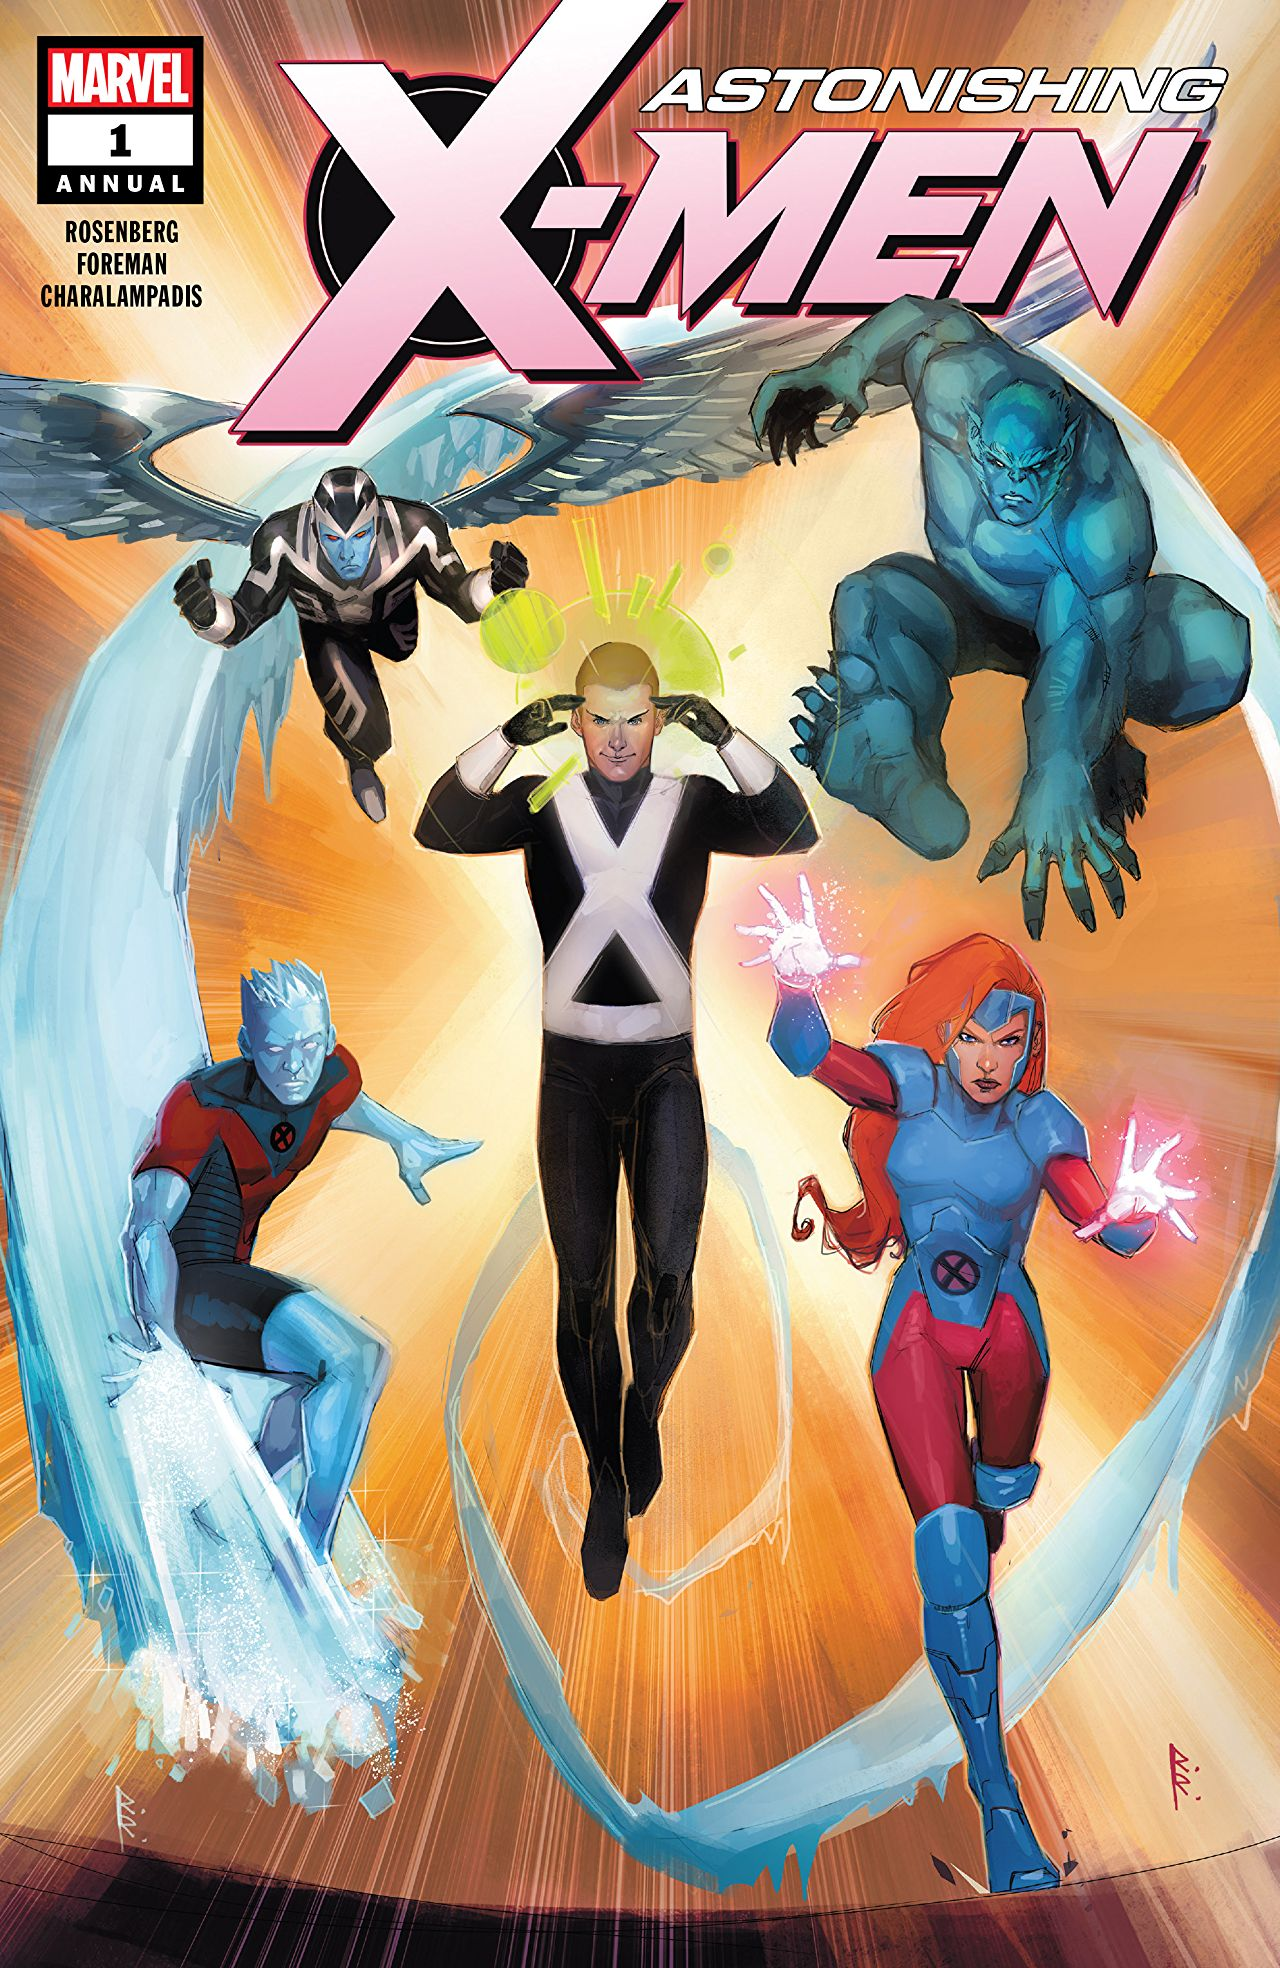 Astonishing X-Men (Vol. 4)  #1 Annual